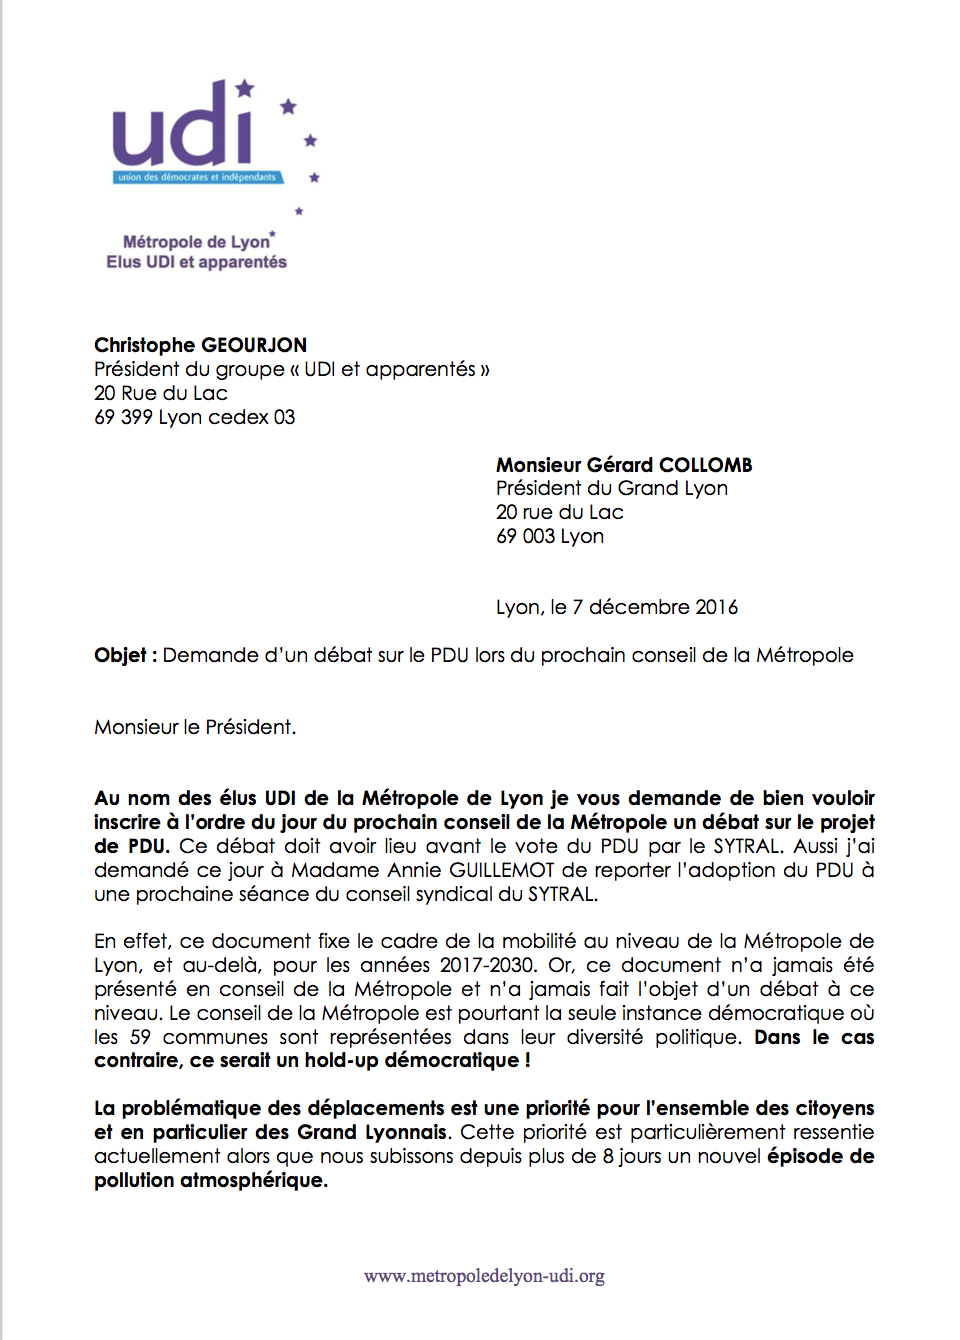 lettre-a-collomb-sytral-pdu-1